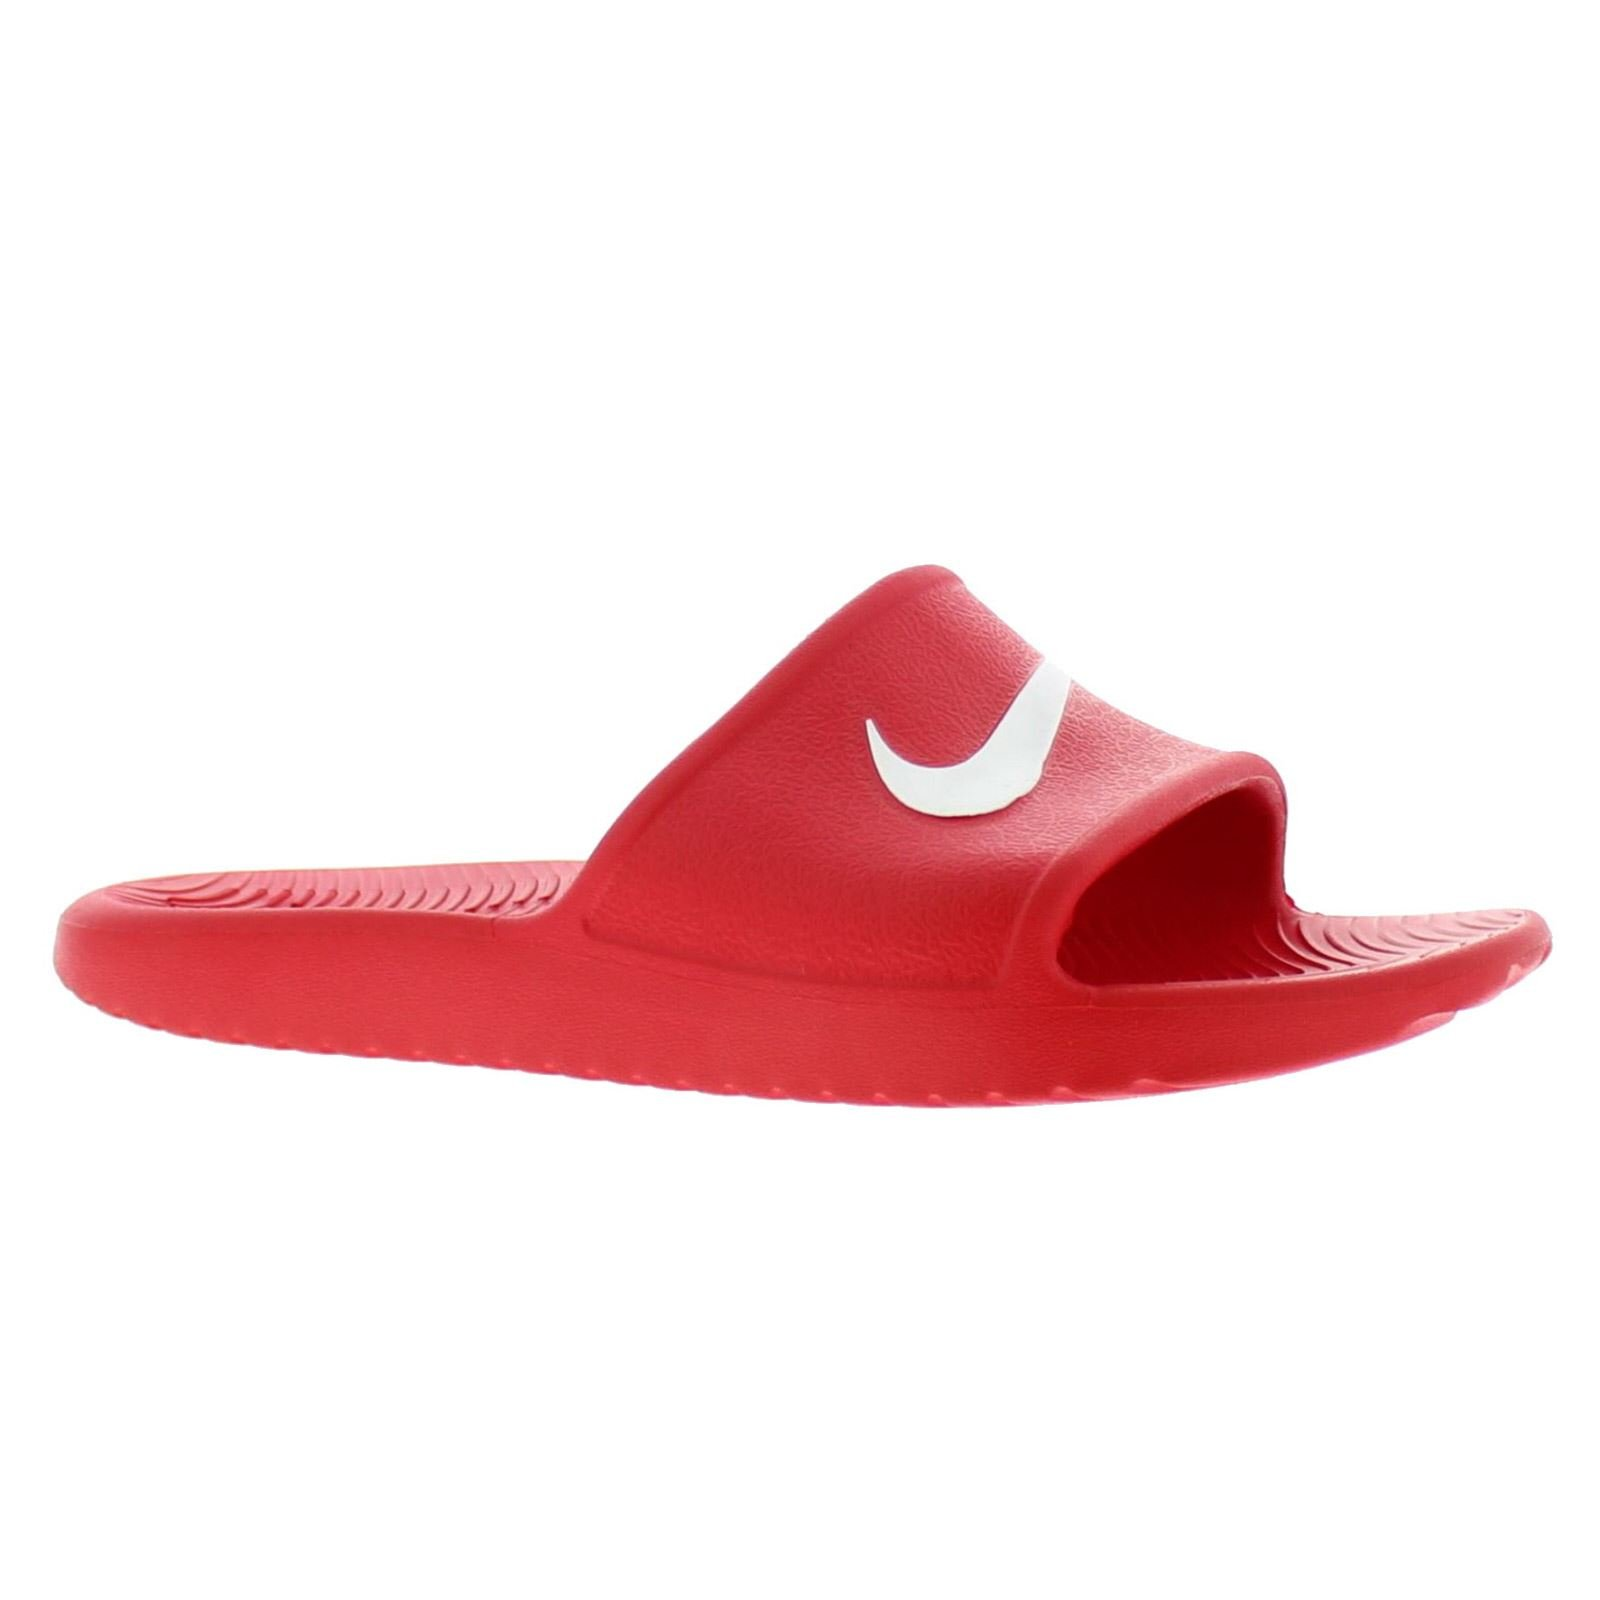 best sneakers 7e1ce ff130 ... good galleon nike mens kawa shower slide sandals university red white  11ships directly from nike 5defb